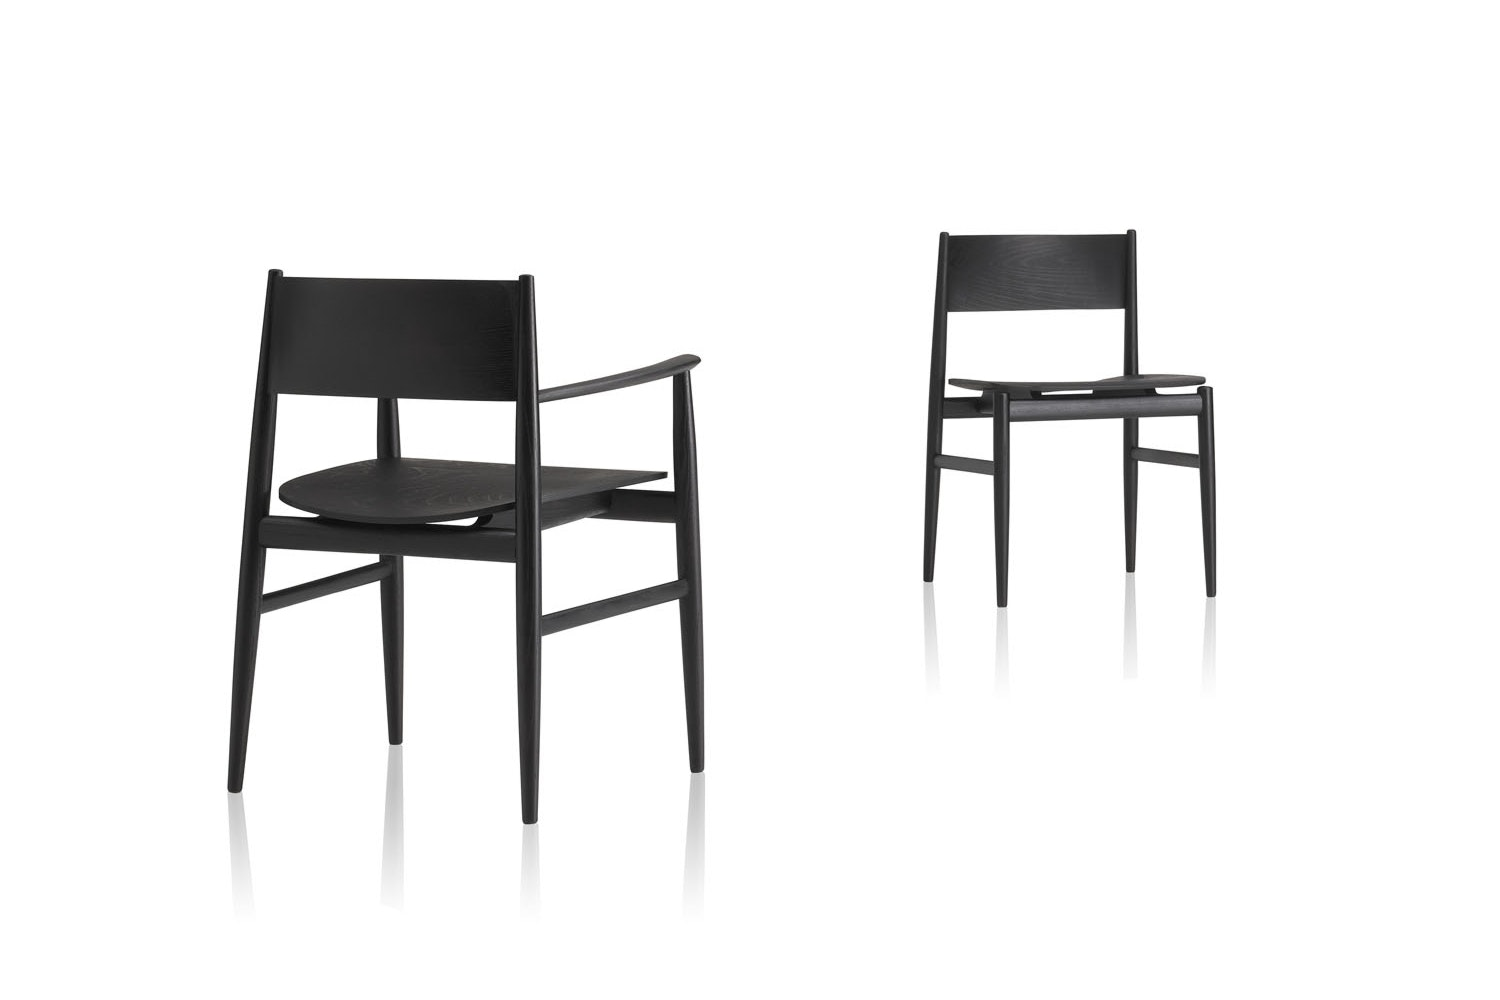 Neve Chair with Arms by Piero Lissoni for Porro